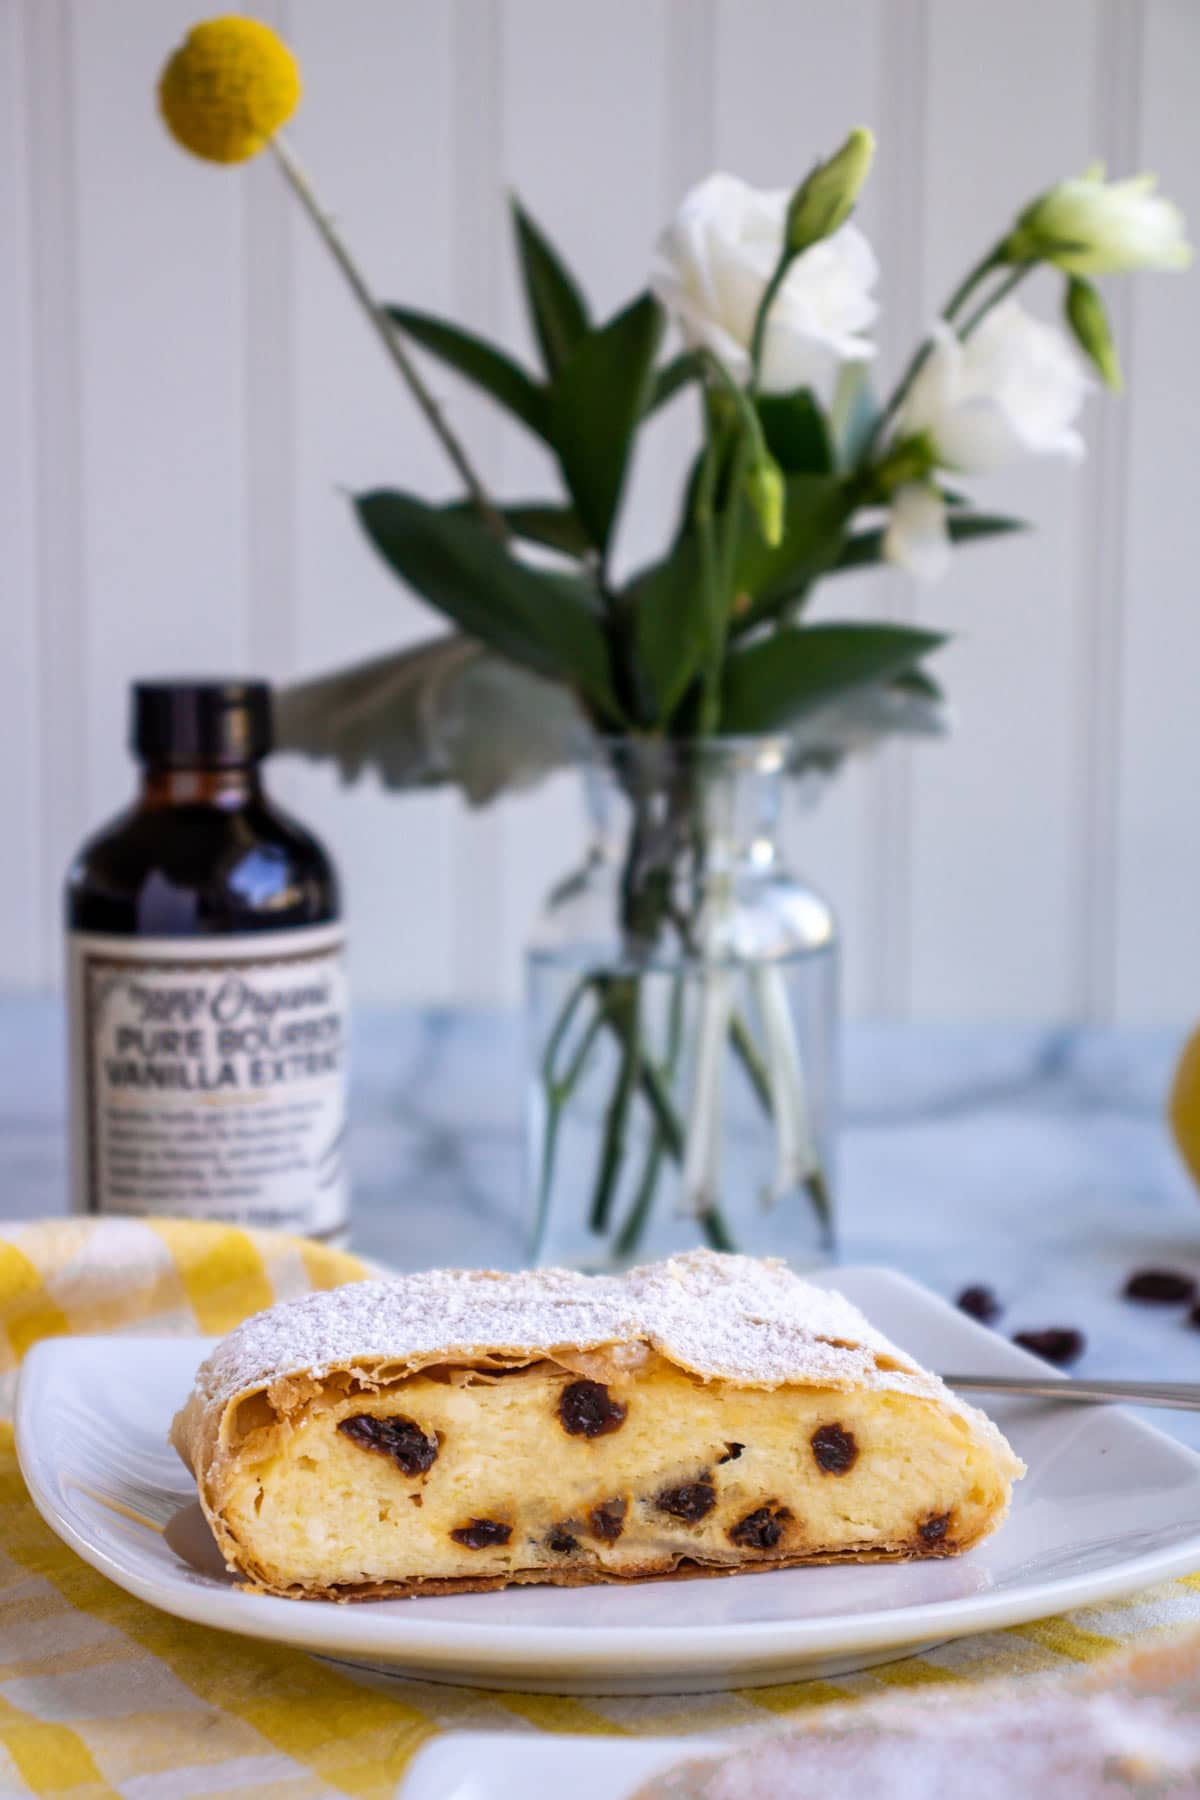 A slice of quark strudel with flowers and a bottle of vanilla extract behind it.